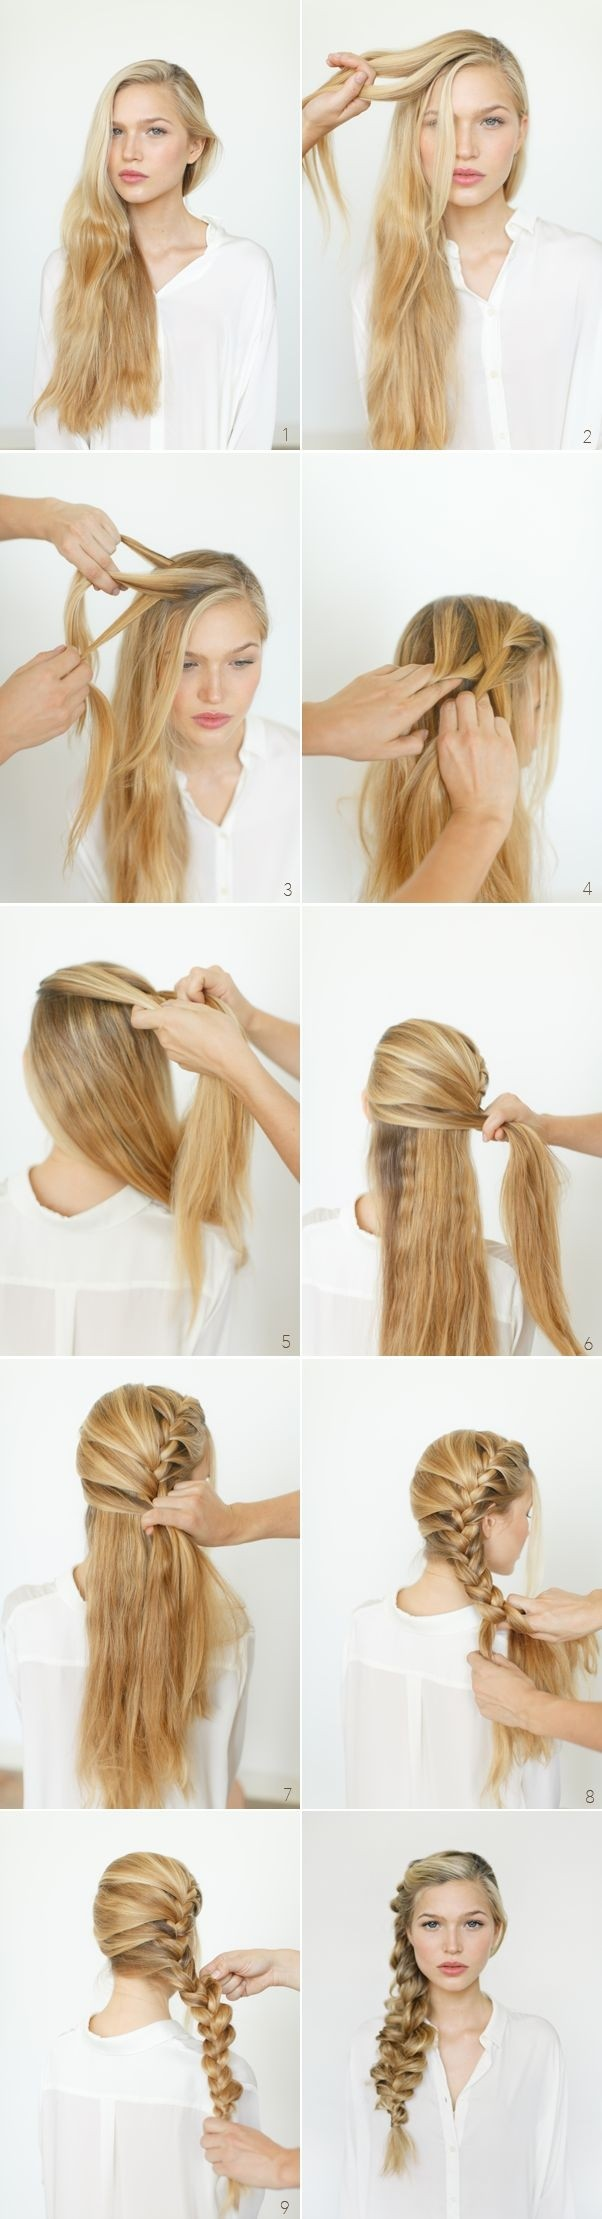 Incredible 10 Amazing Braided Hairstyles For Long Hair Pretty Designs Hairstyle Inspiration Daily Dogsangcom